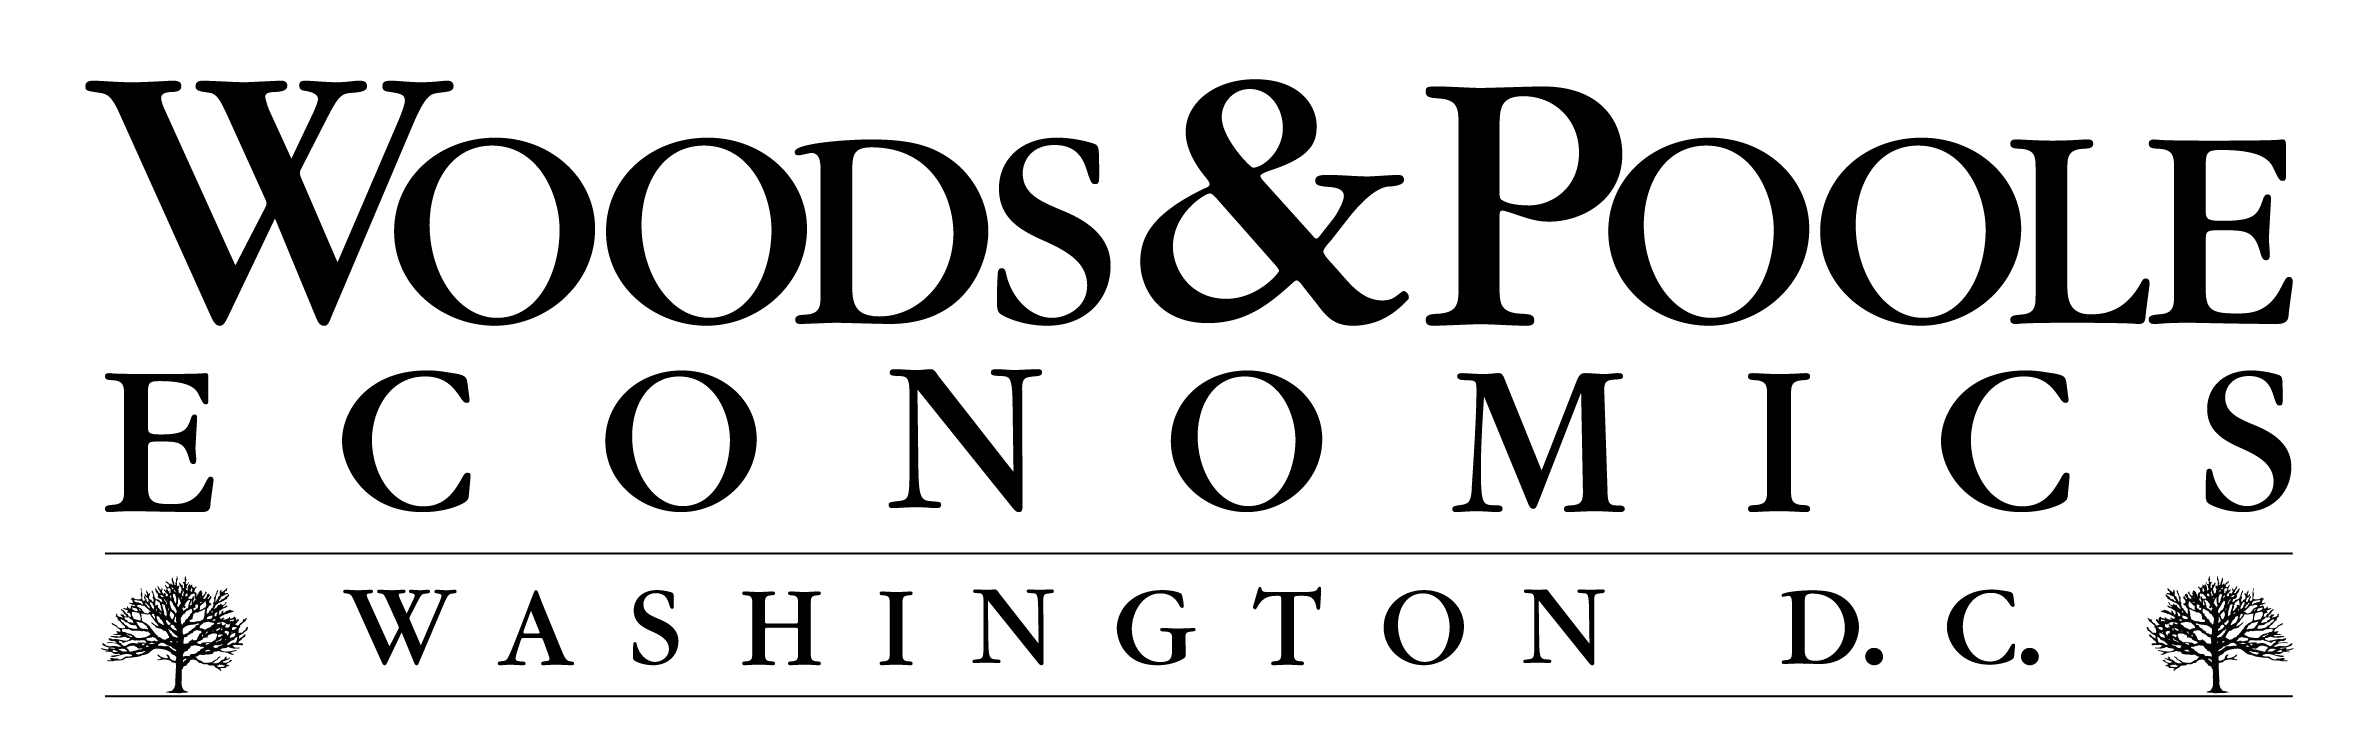 MORRISTOWN TN (FIPS 34100) | Woods & Poole Economics, Inc